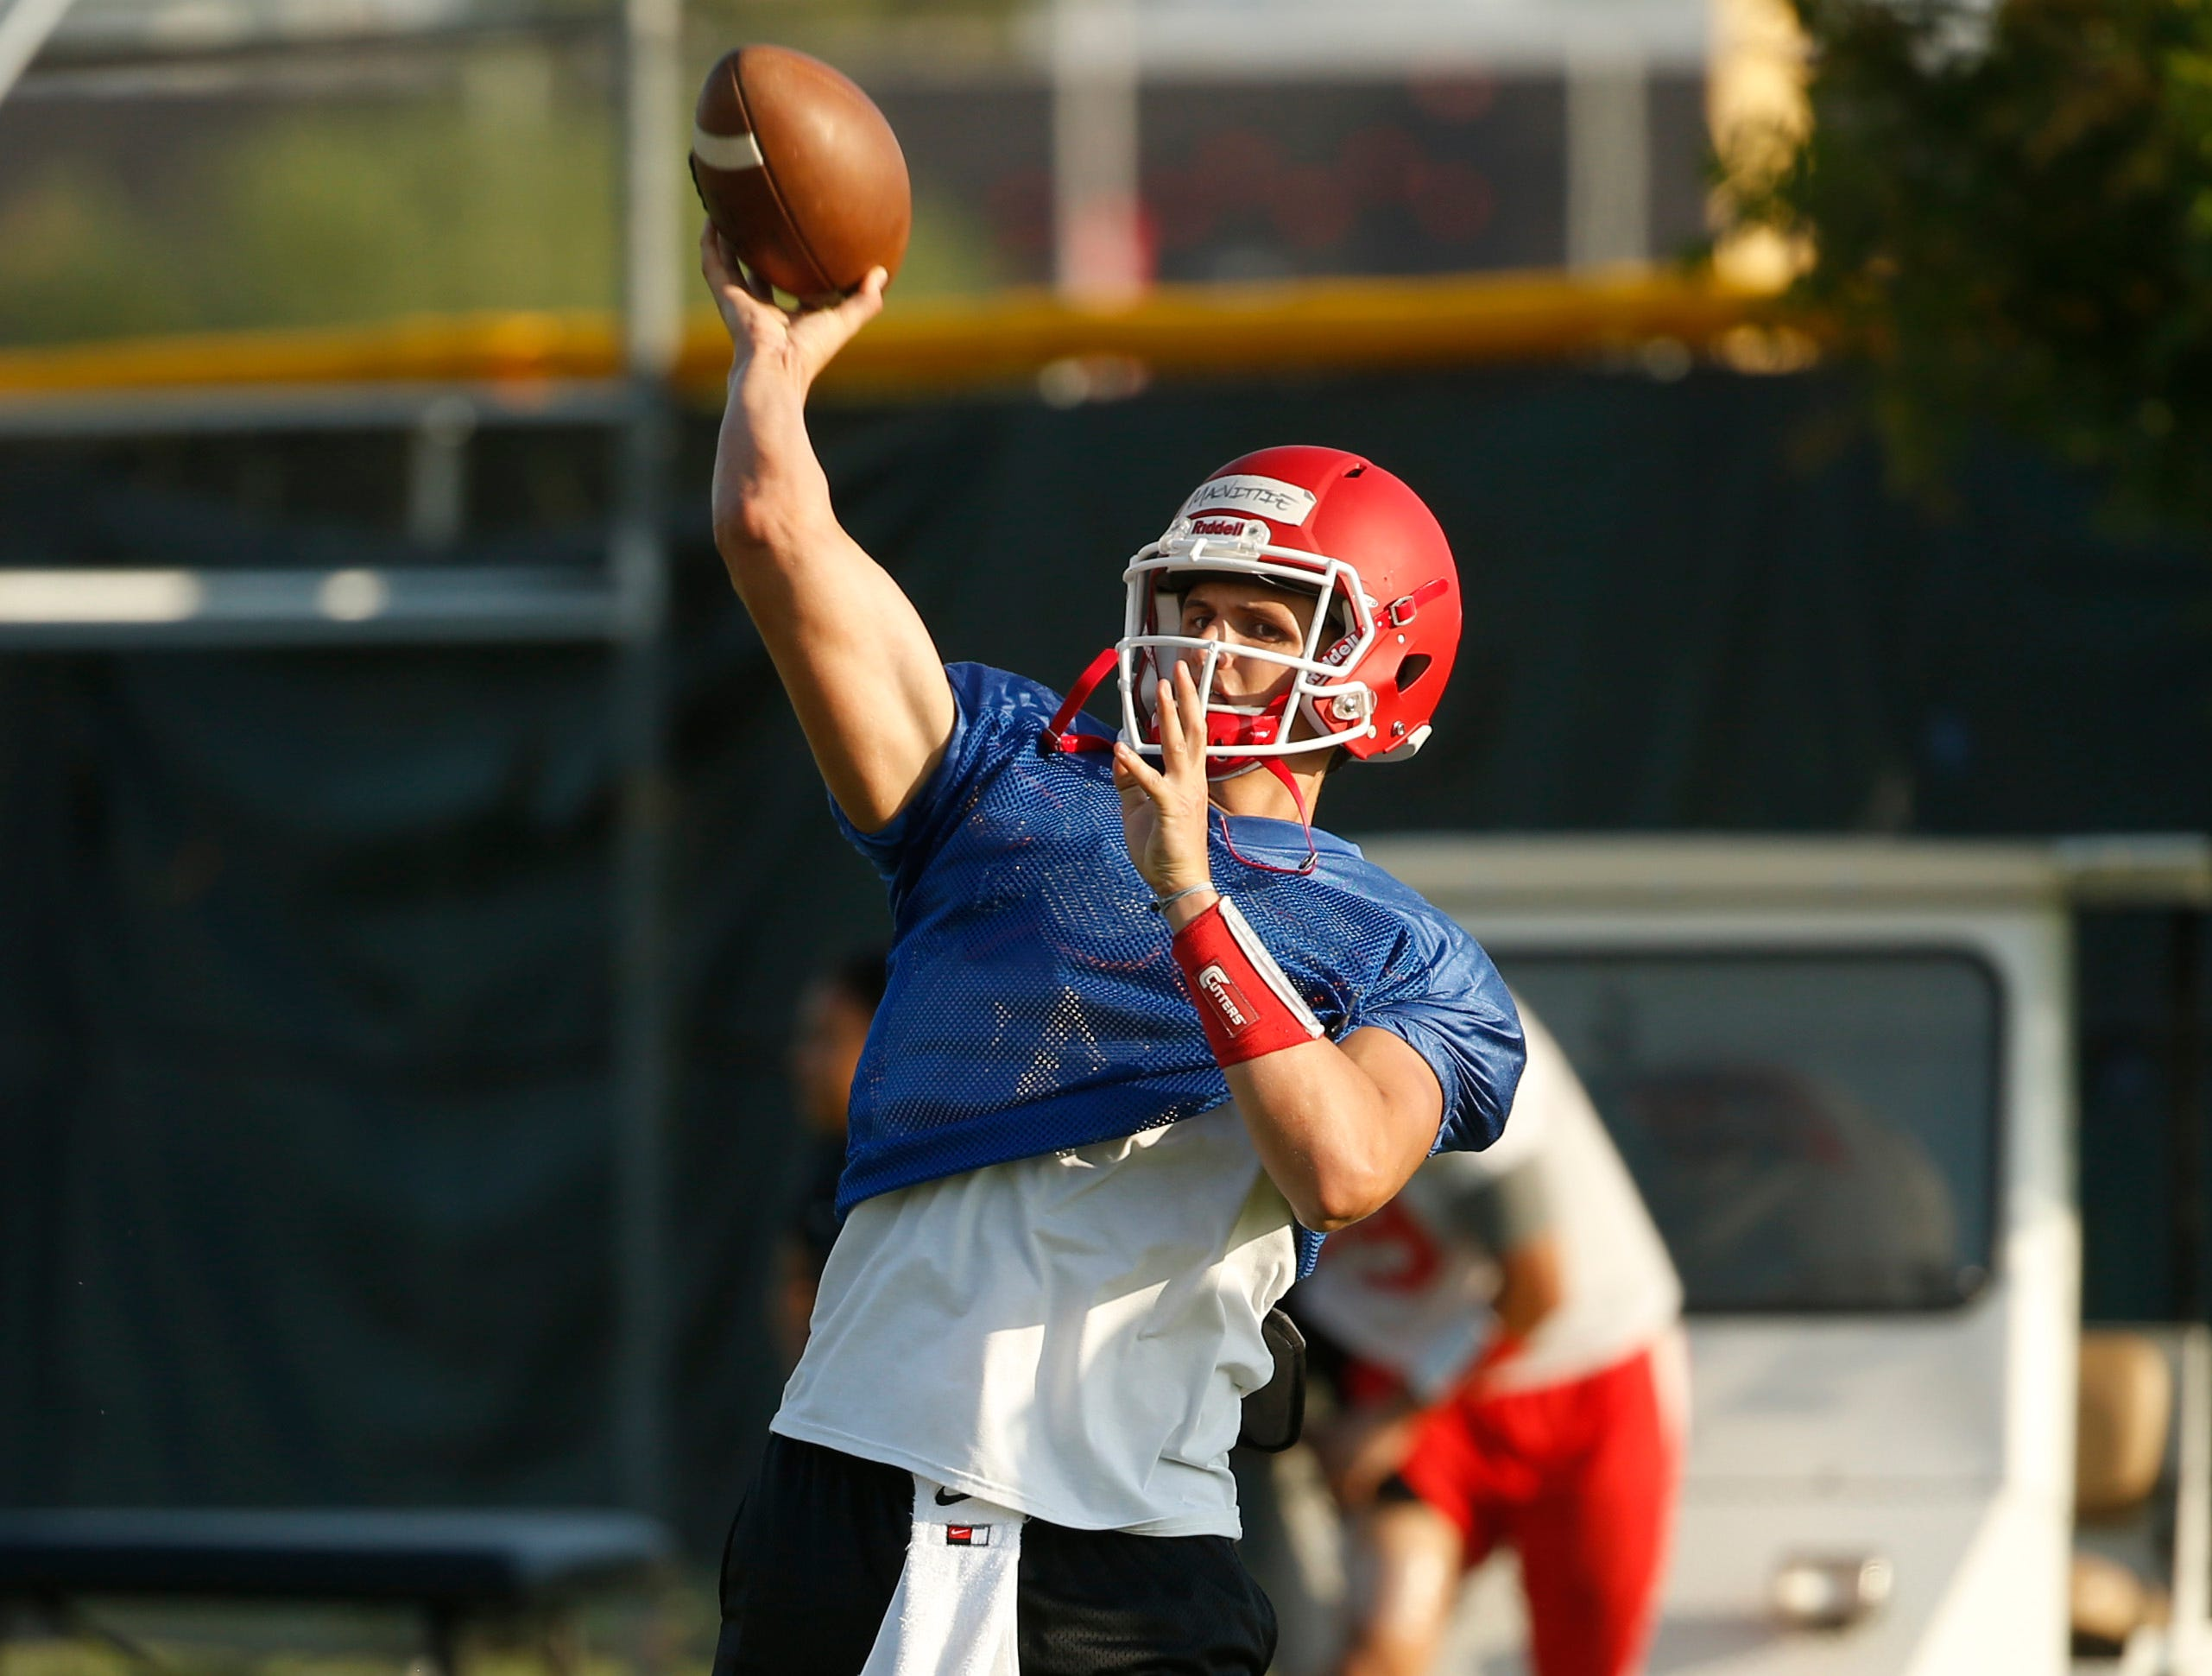 Player Thomas MacVittie throws a pass during practice at Mesa Community College in Mesa, Ariz. on Aug. 16, 2018.